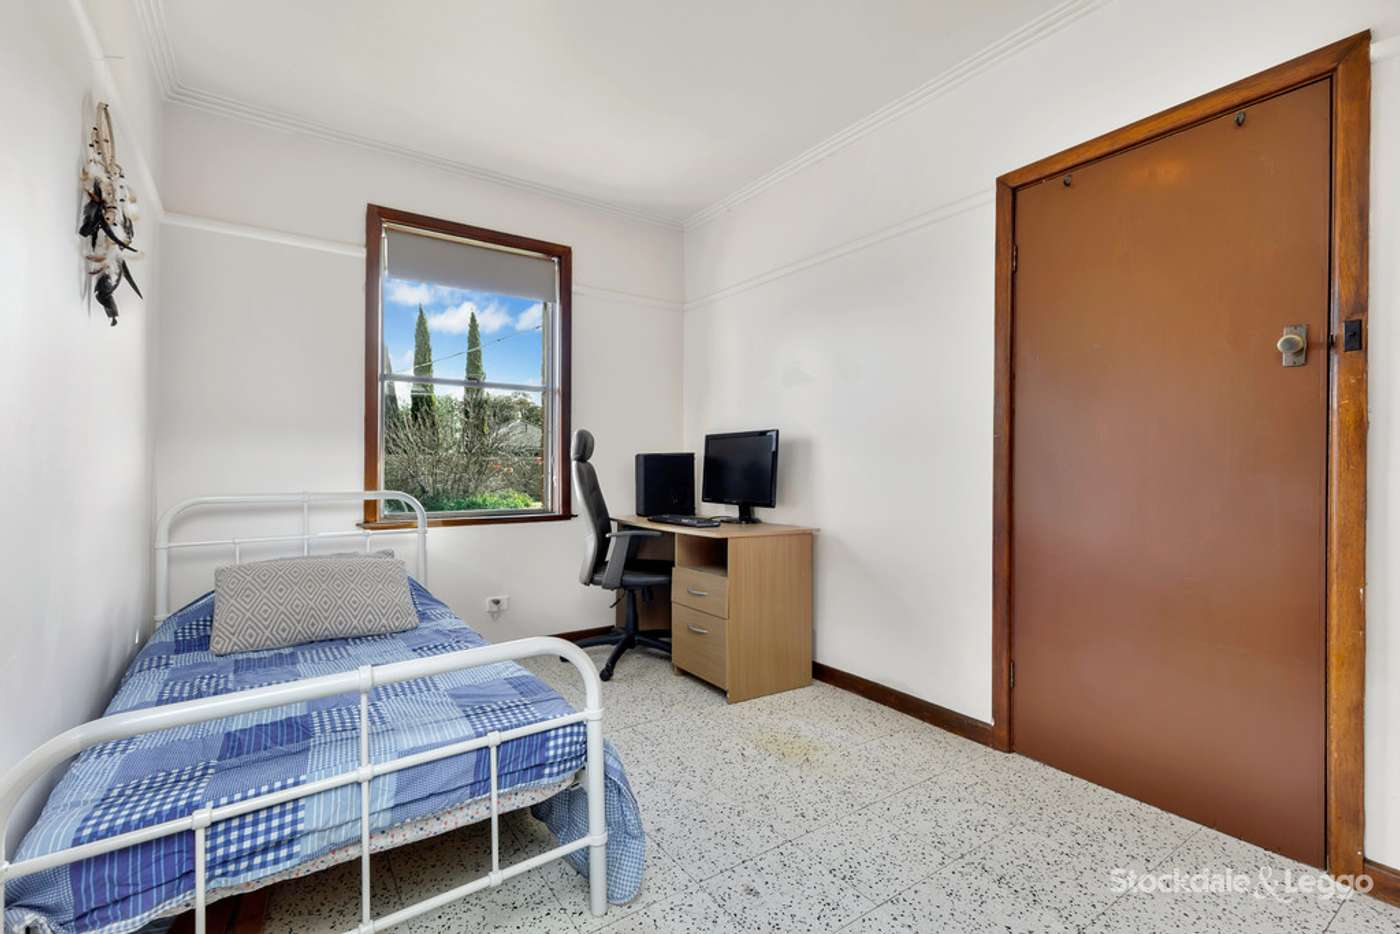 Sixth view of Homely house listing, 11 Lesleigh Street, Fawkner VIC 3060